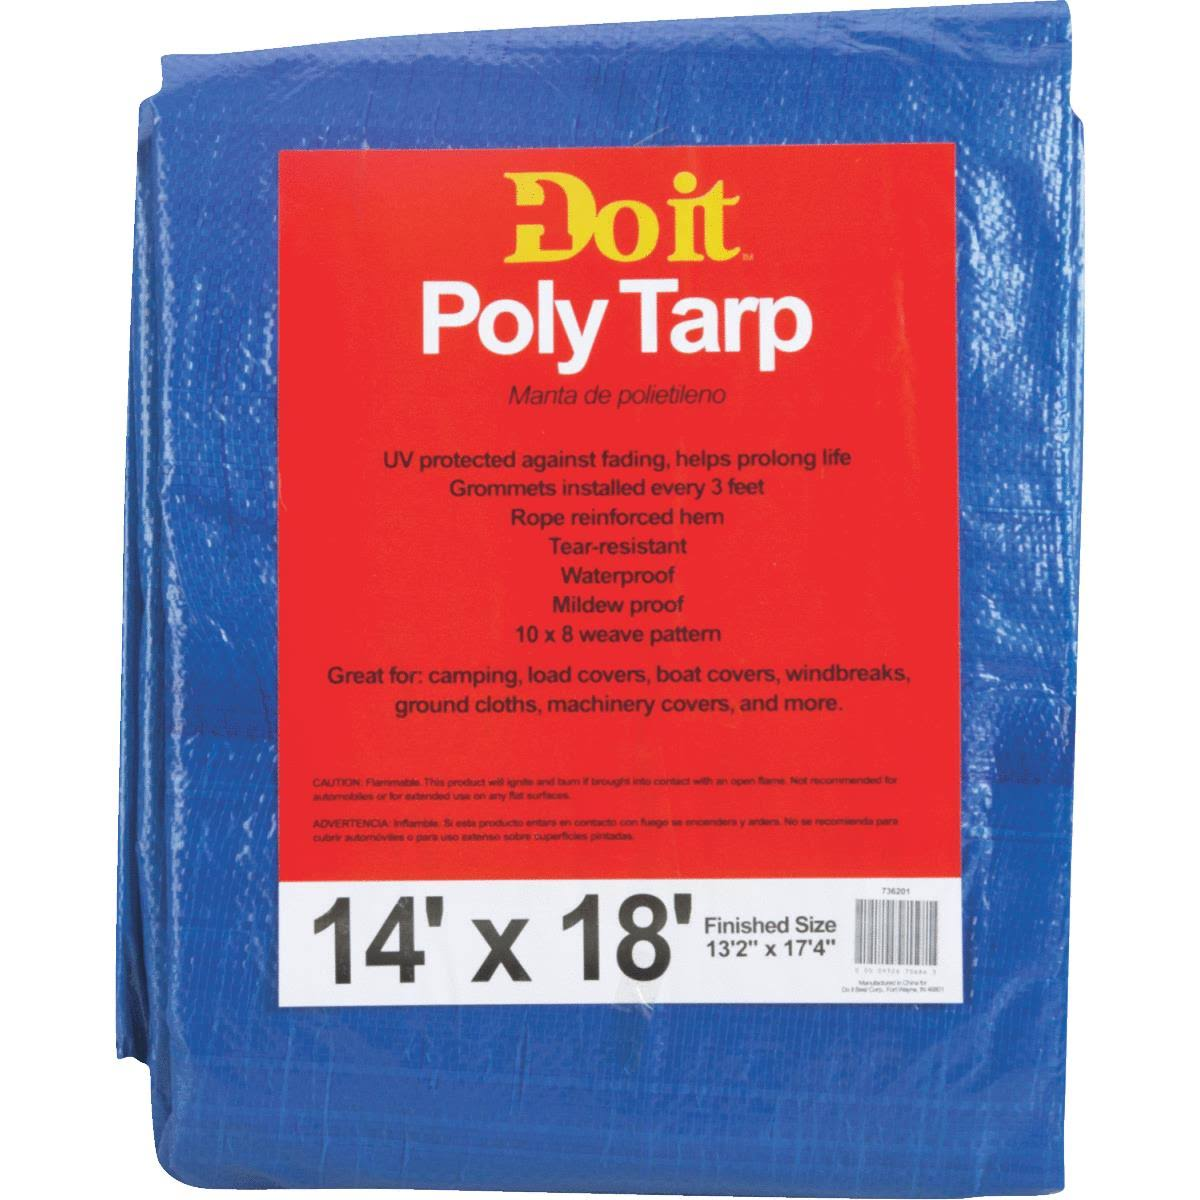 Do It Dynatech International Inc Medium Duty Tarp - Blue, 14' x 18'